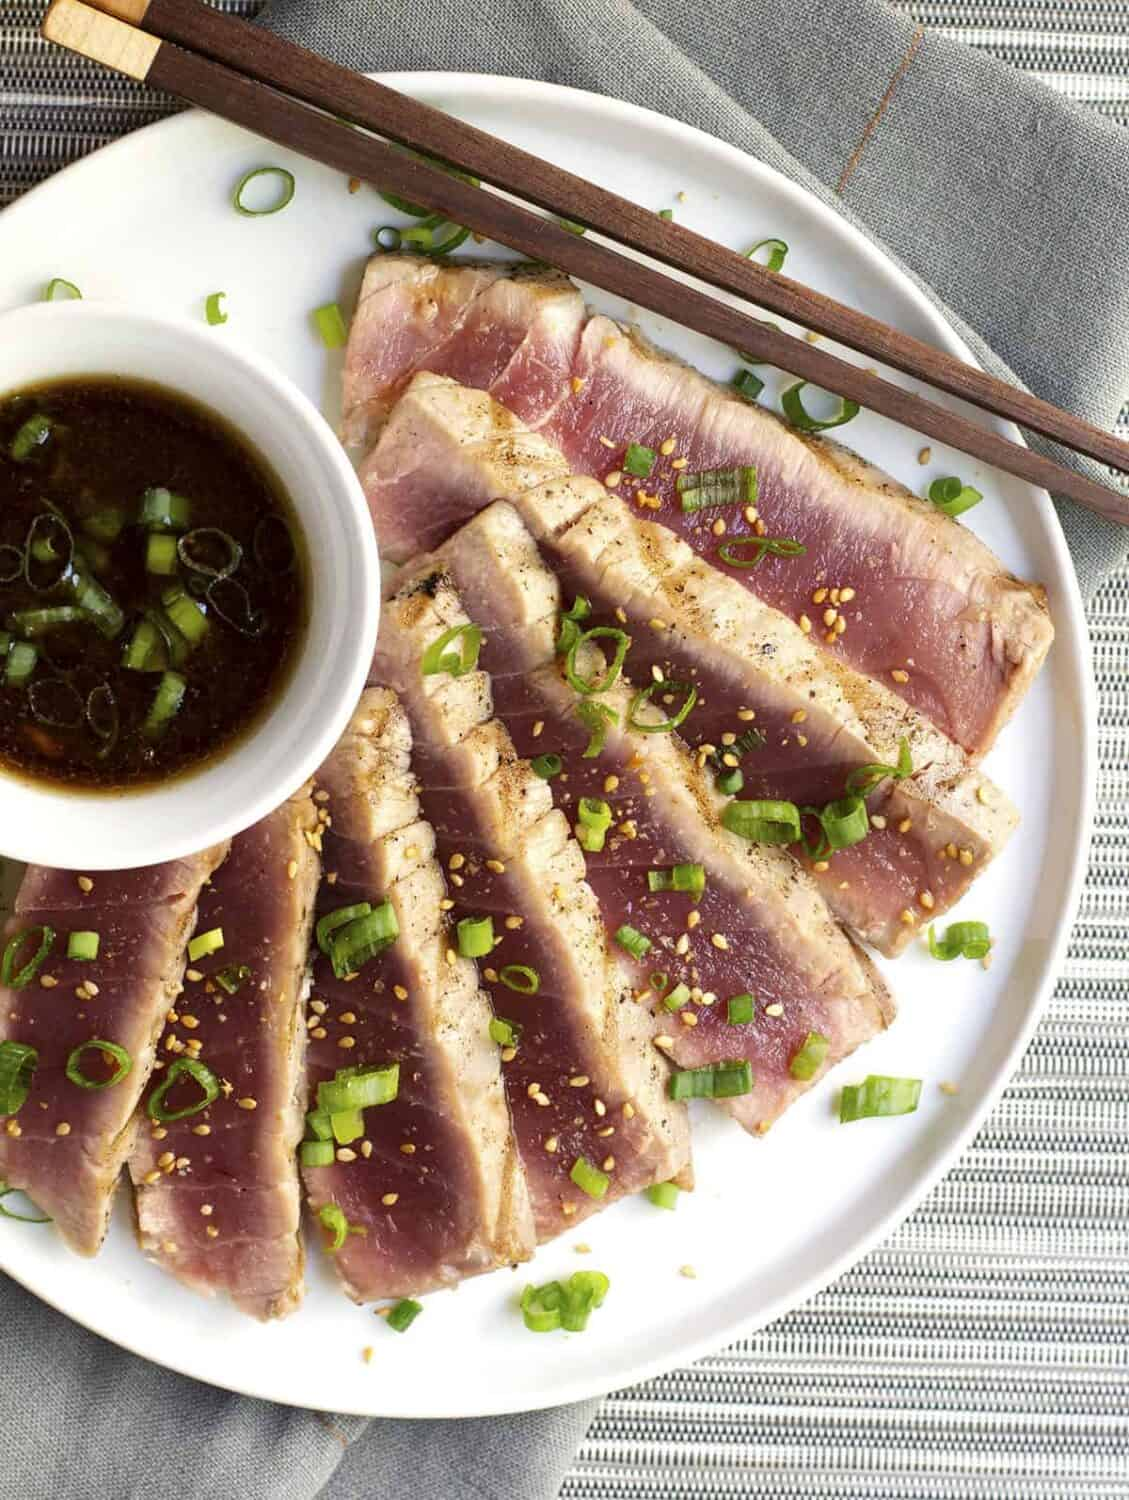 Grilled Tuna Steaks served on a white plate photographed from above